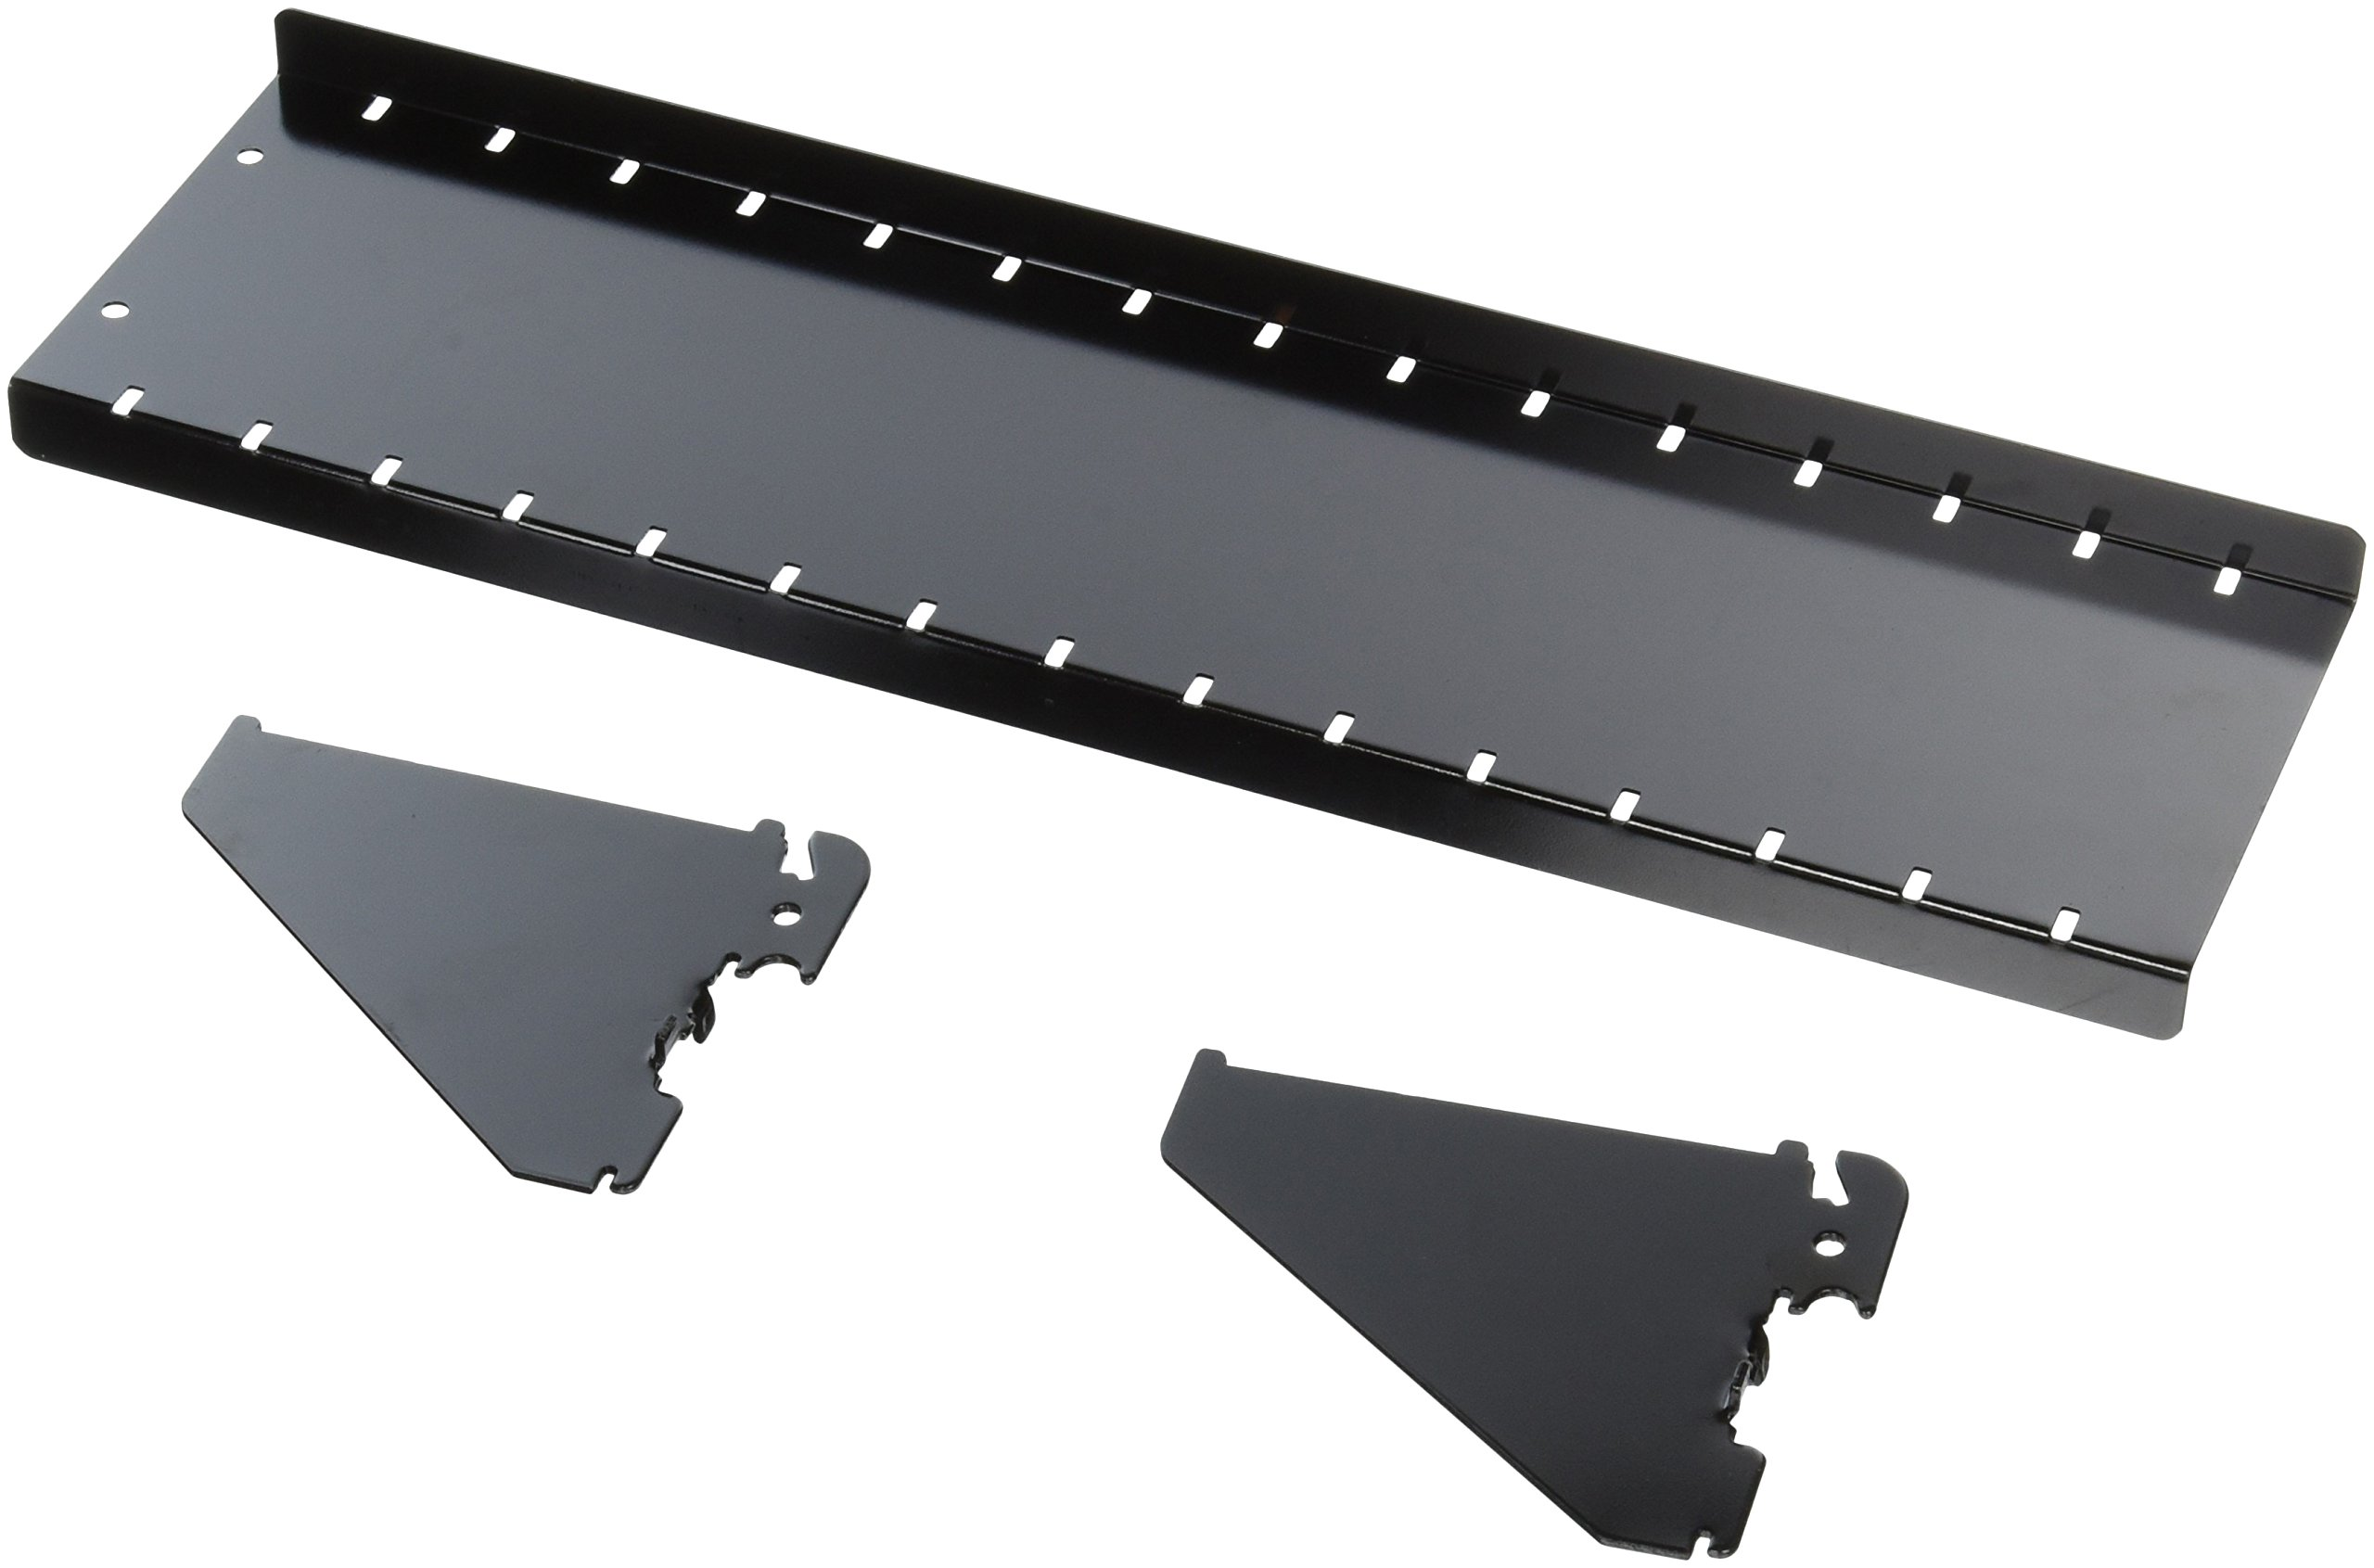 Wall Control ASM-SH-1604 B 4'' Deep Pegboard Shelf Assembly for Wall Control Pegboard Only, Black by Wall Control